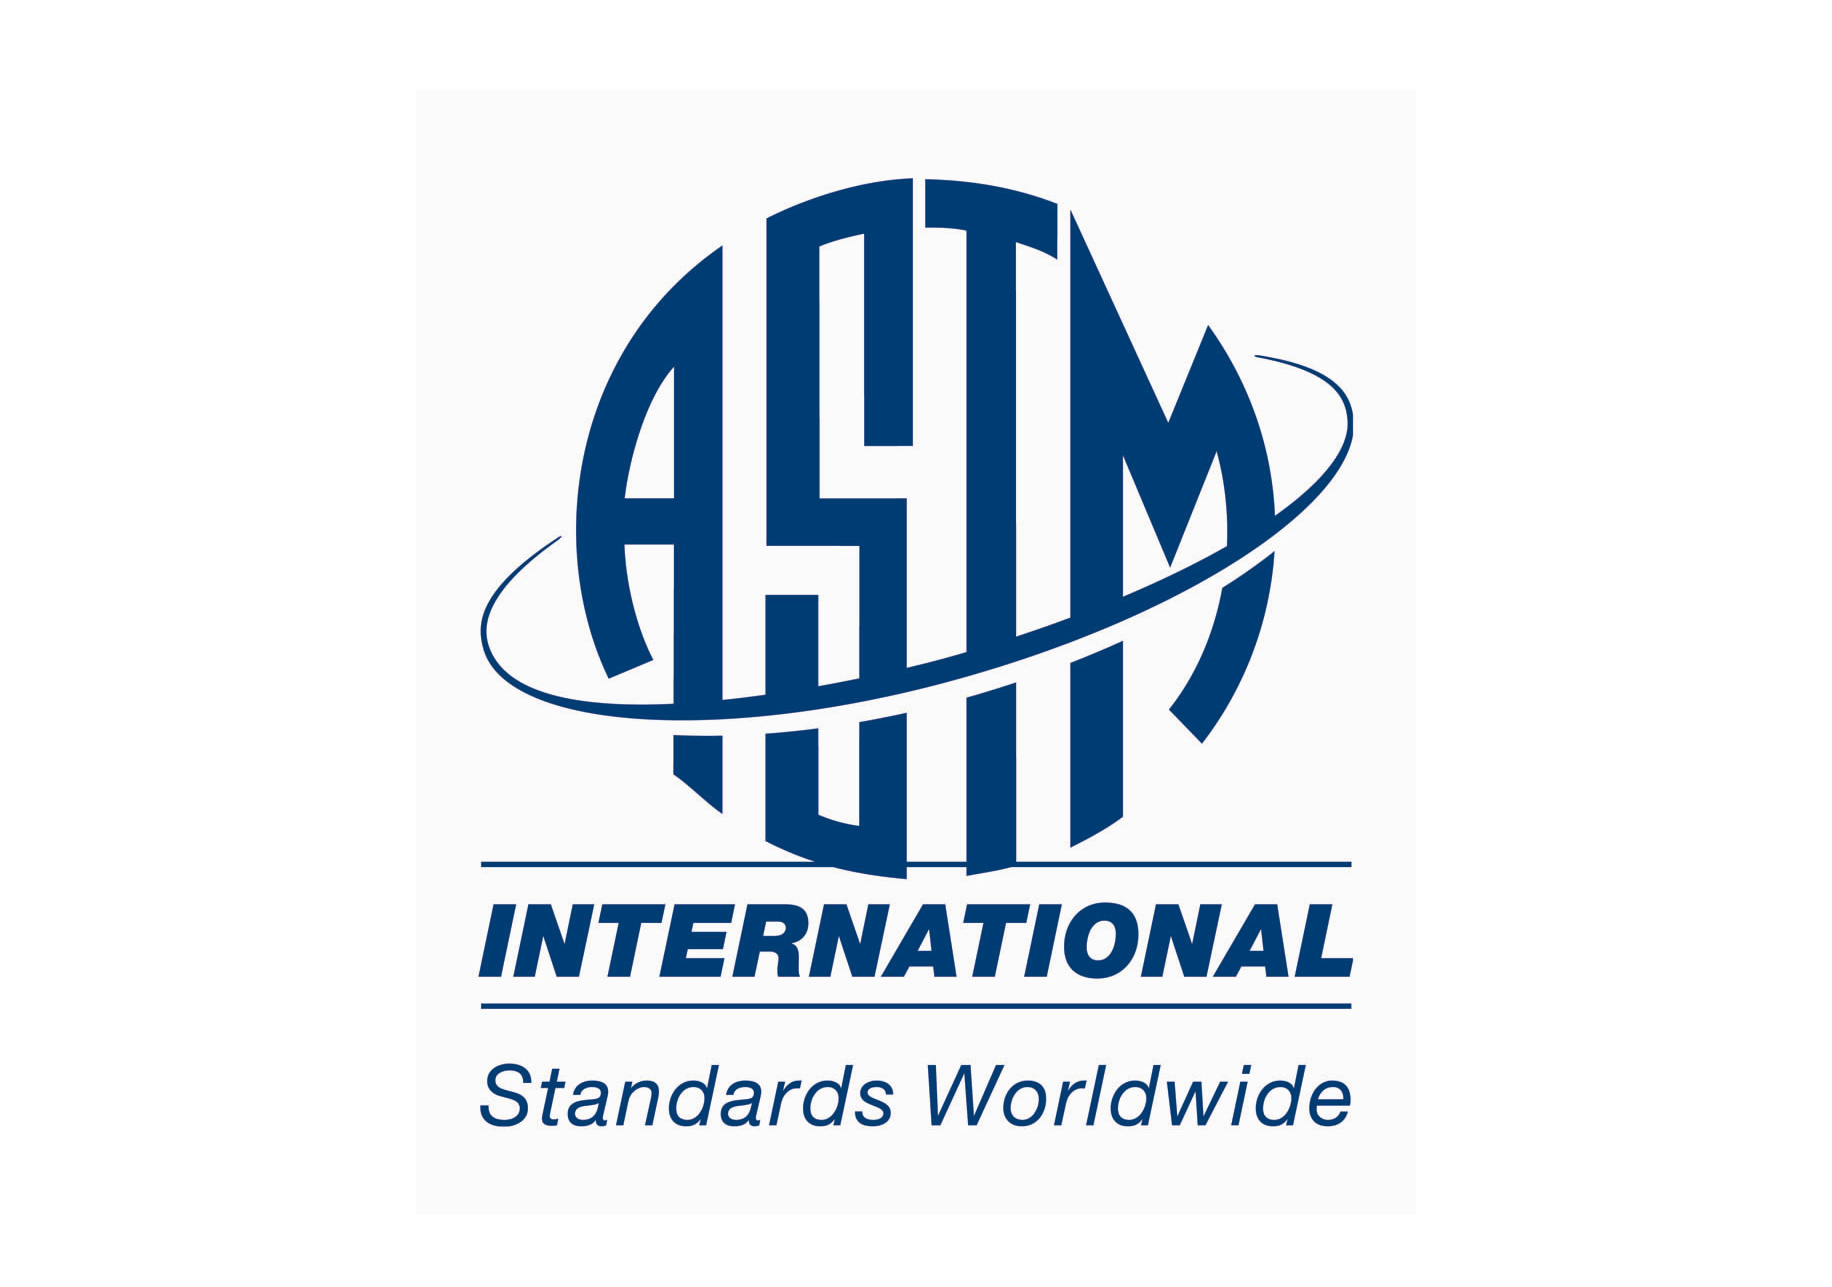 New Approved ASTM Standard for Nondestructive Examinations